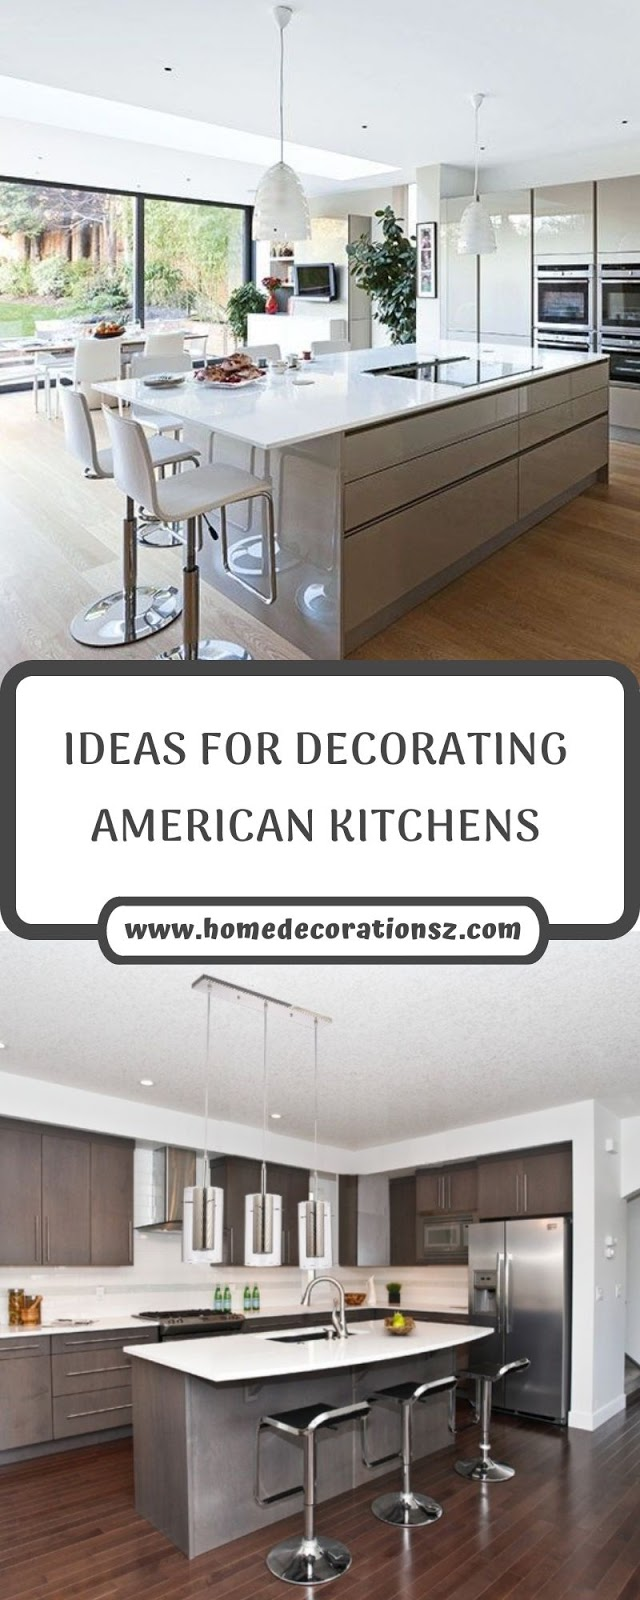 IDEAS FOR DECORATING AMERICAN KITCHENS